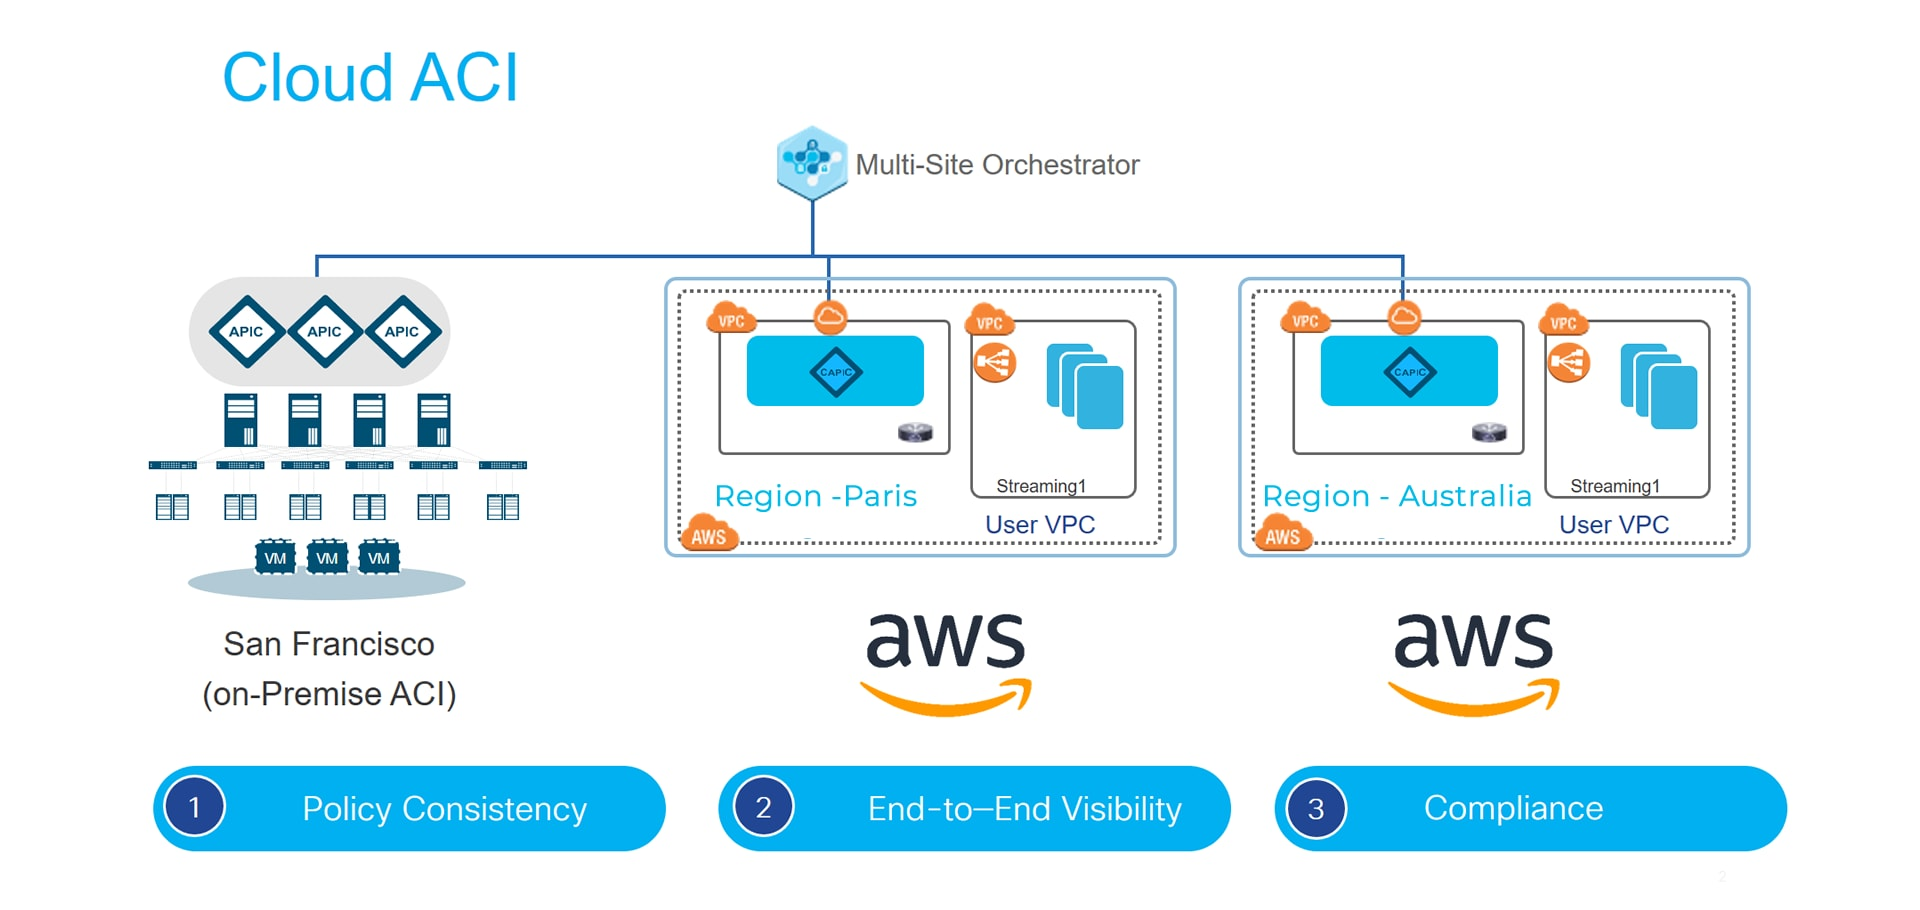 Deploying Cisco Cloud APIC in AWS - Walkthrough